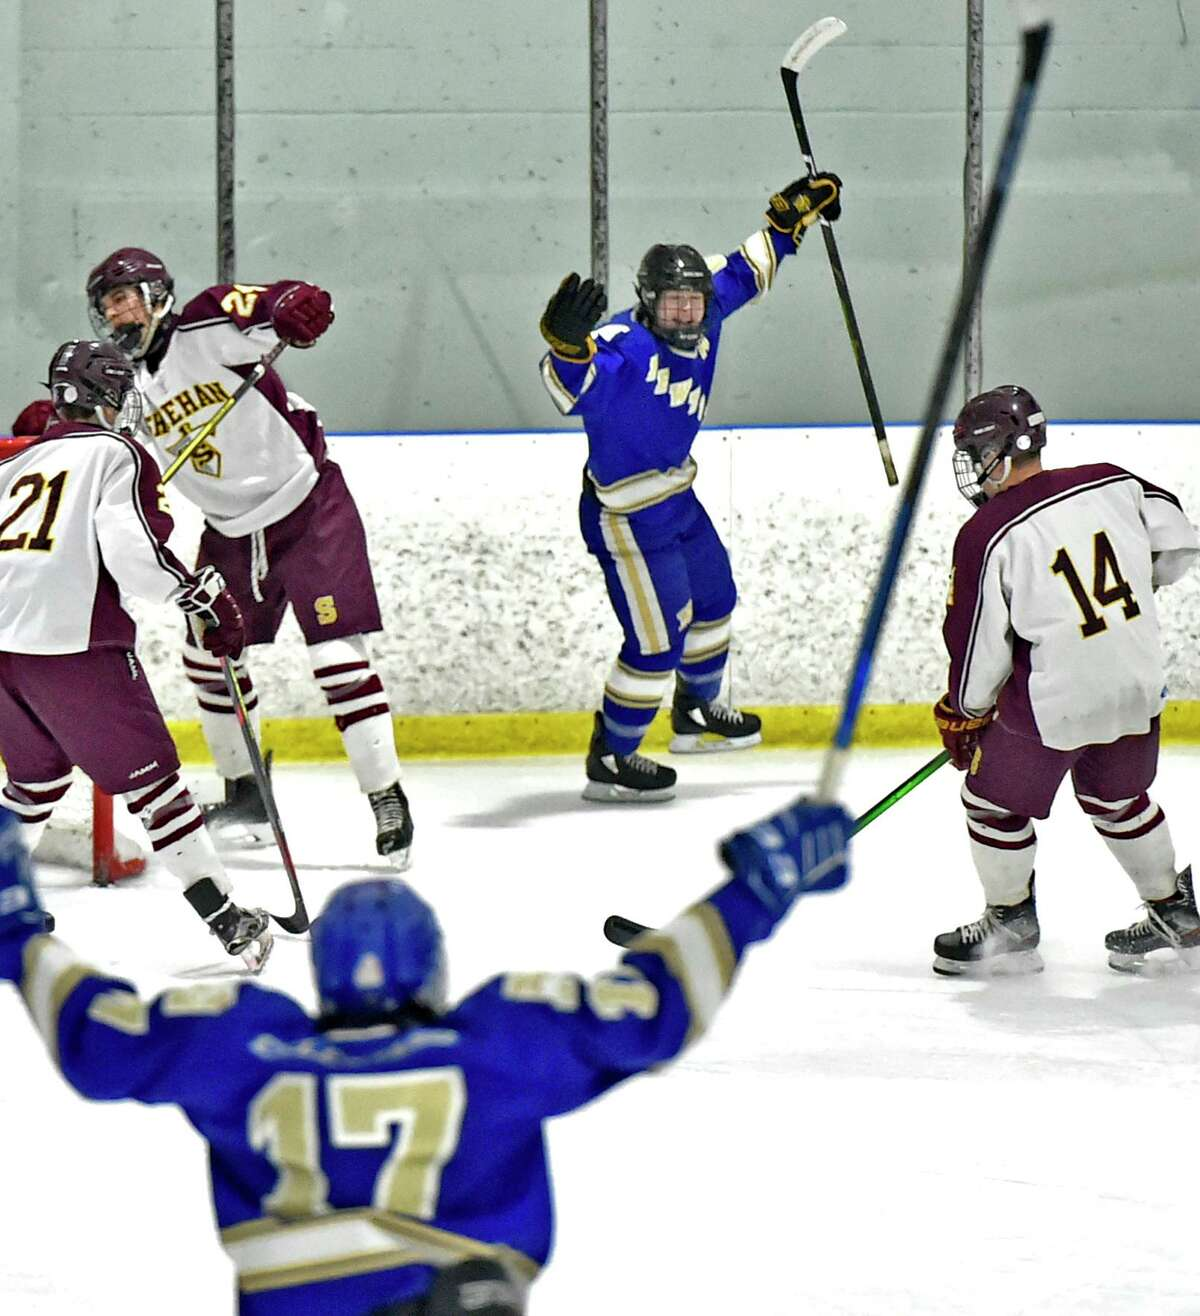 Newtown's Philip Makris, center rear, celebrates his goal against Sheehan H.S. during the first period of the SCC/SWC 2020 Boys Ice Hockey Division III semifinals Tuesday evening at the Milford Ice Arena in Milford.